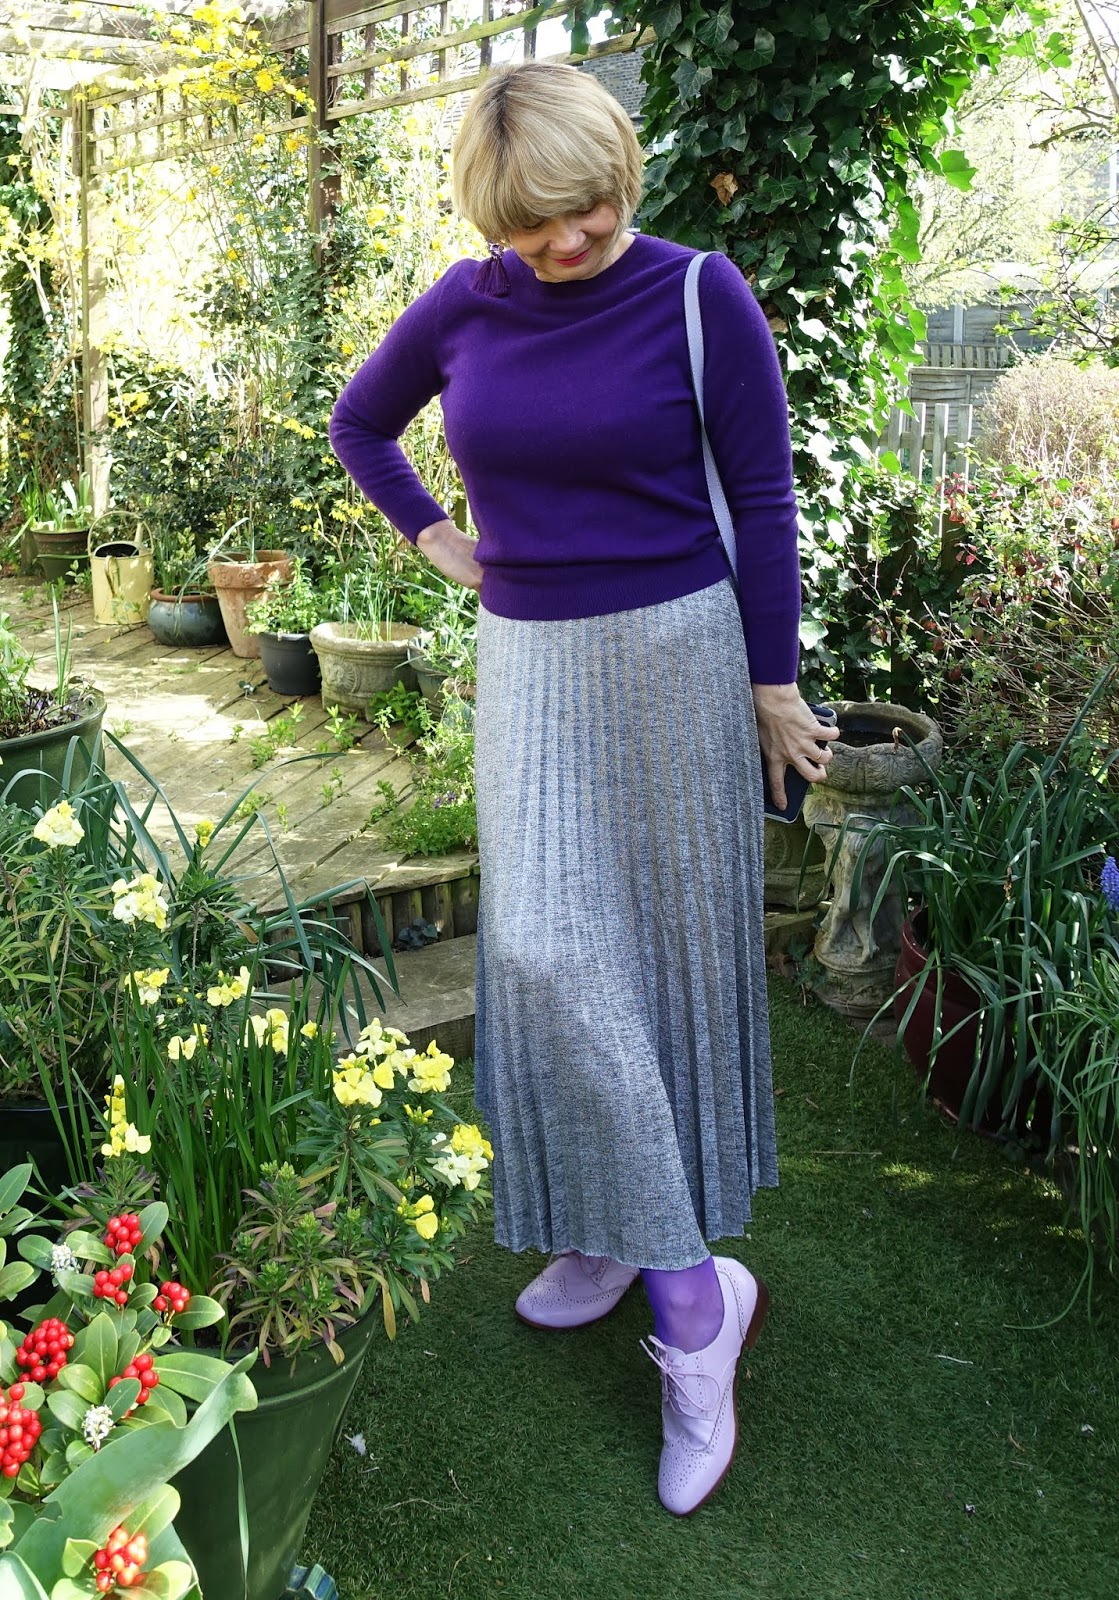 Lilac brogue shoes worn with a long metallic pleated skirt, purple tights and cashmere jumper and lilac bag.